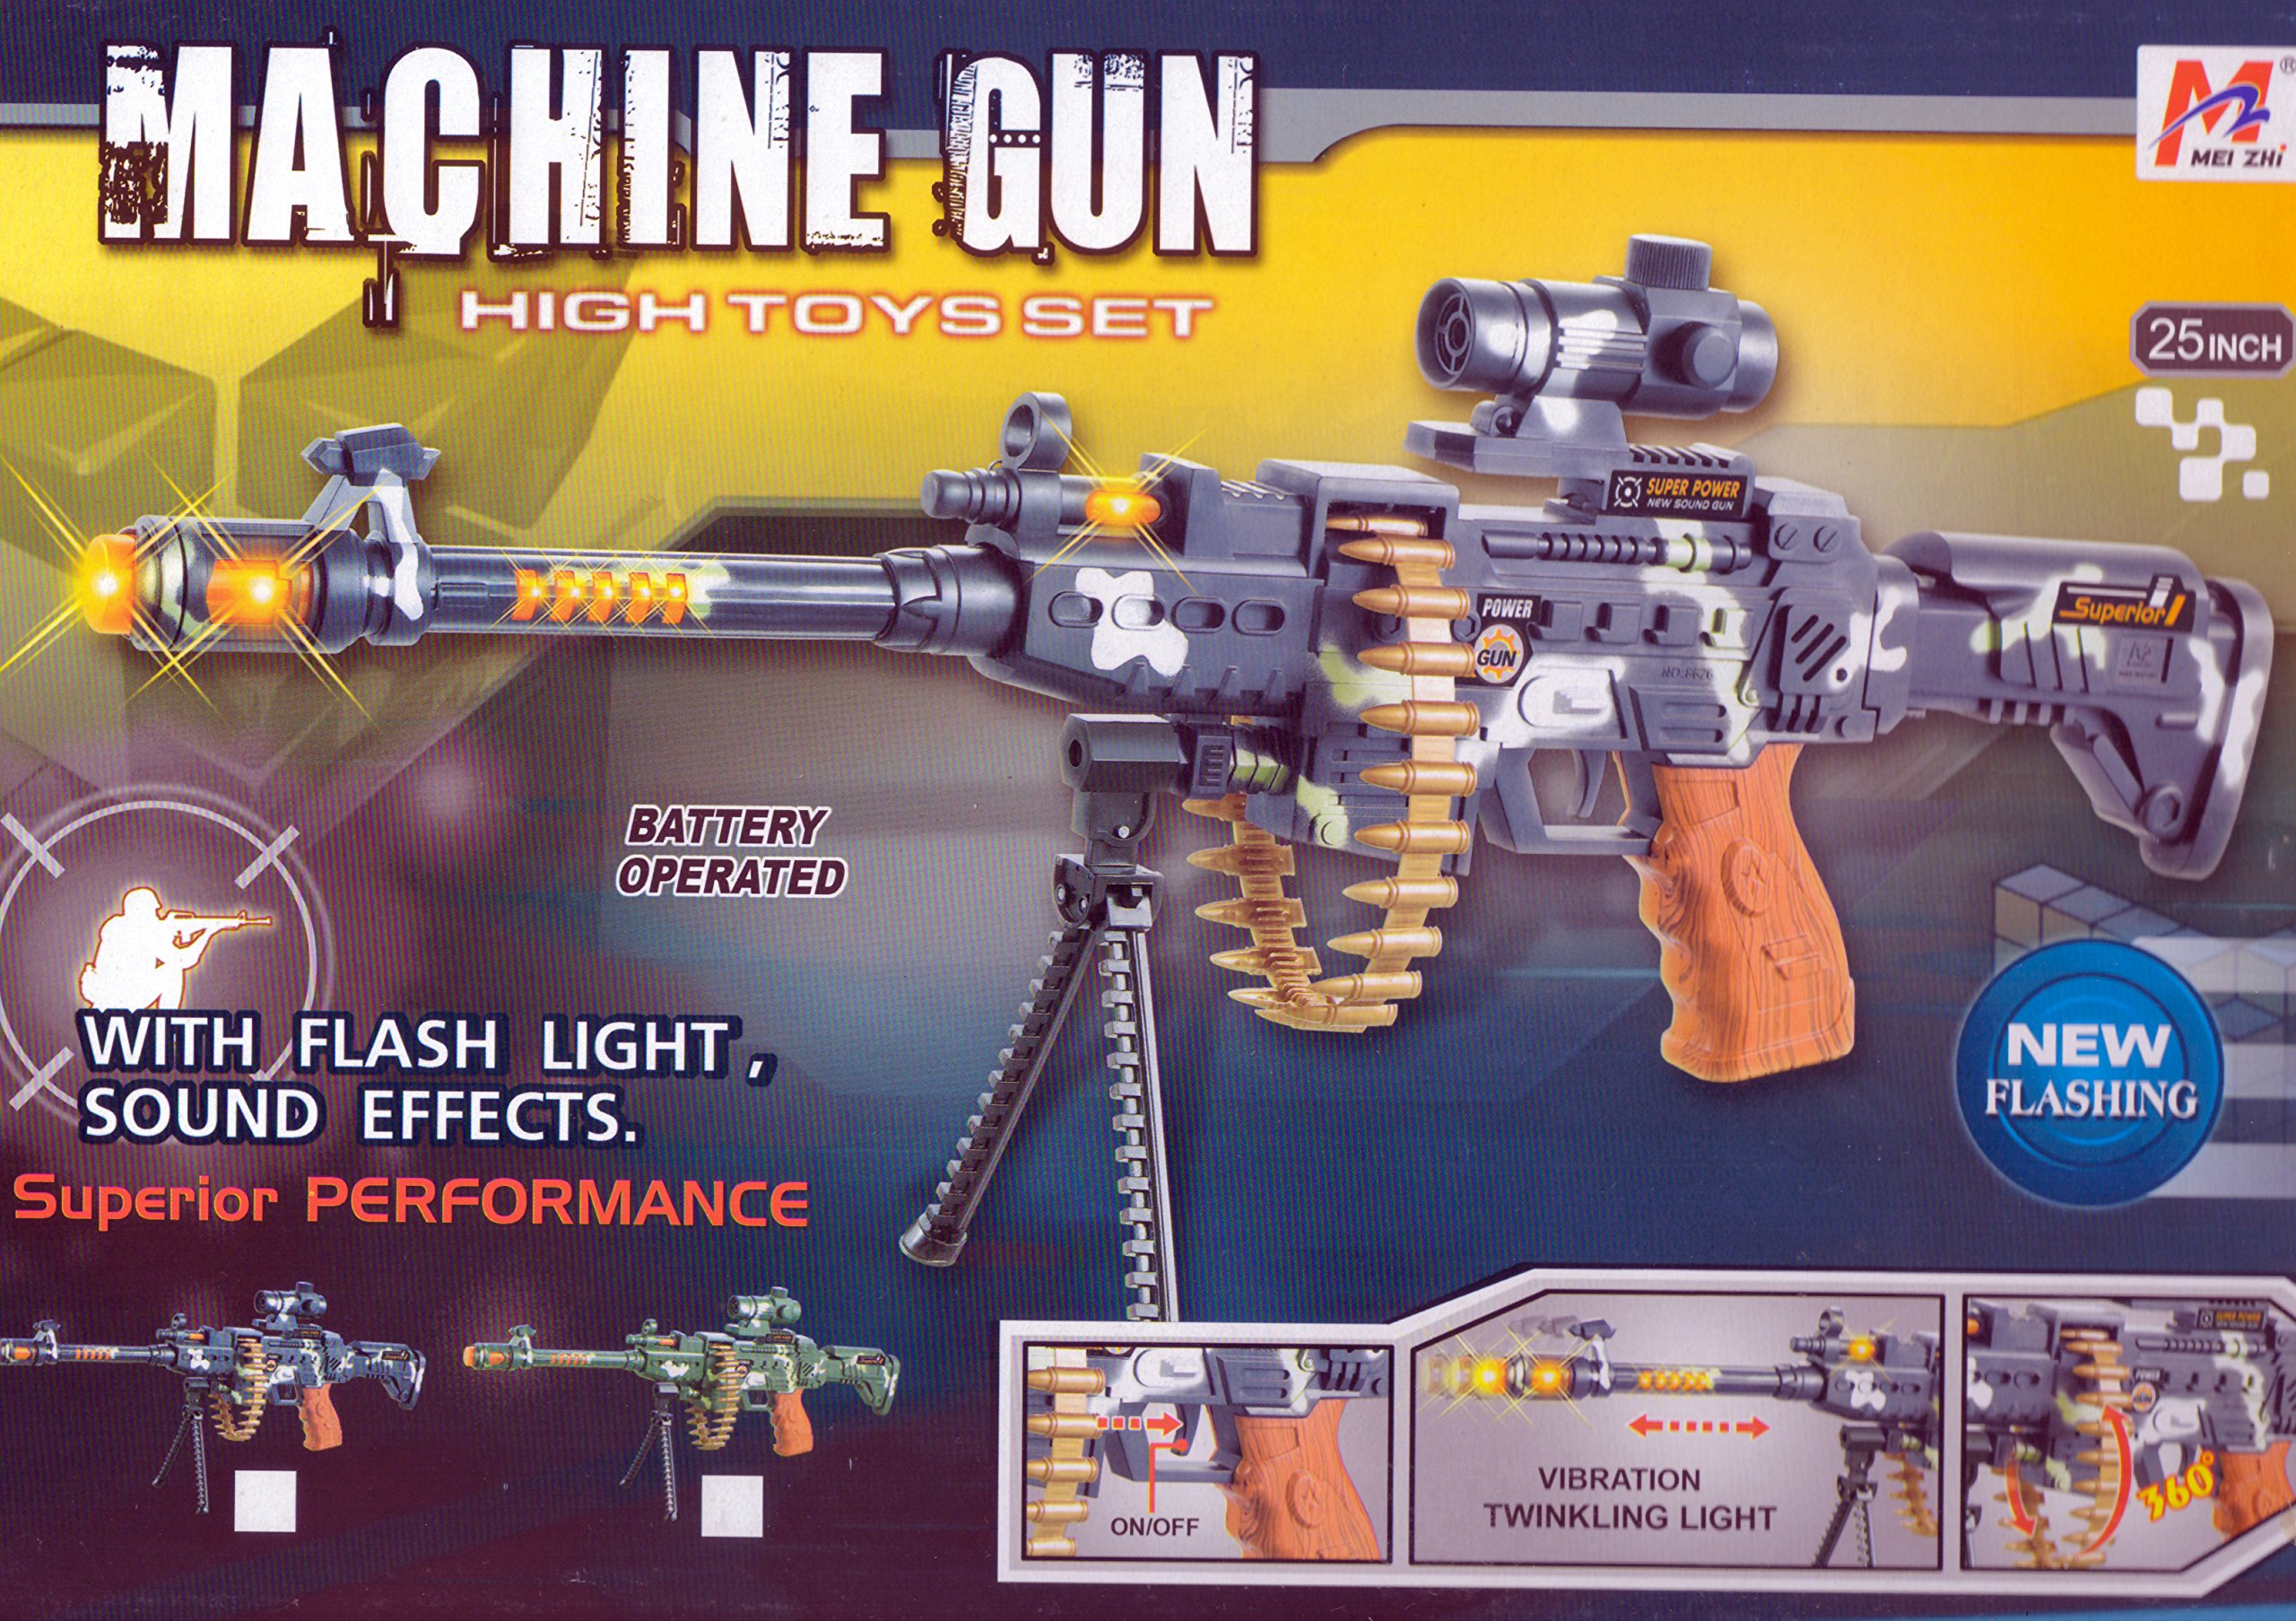 "BATTERY OPERATED BOYS FIRE POWER 24"" LIGHT UP TOY MACHINE GUN W/SCOPE. FLASHING LIGHTS AND SOUND EFFECTS GUN TOY - POPULAR WITH KIDS"